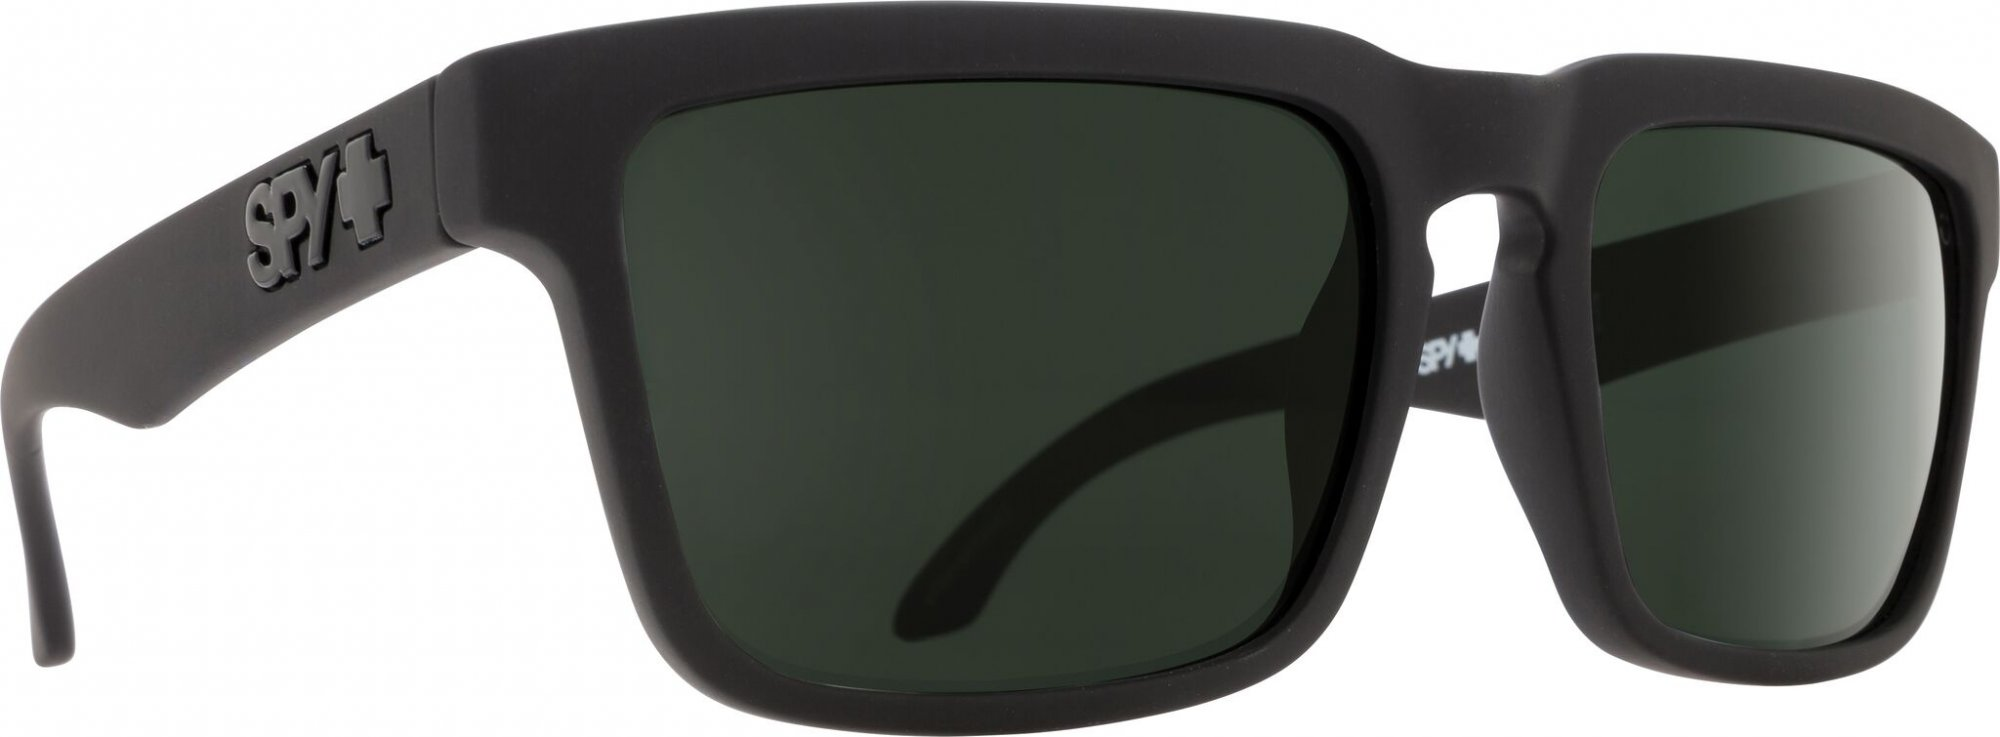 SPY HELM SOFT MATTE BLK POLAR